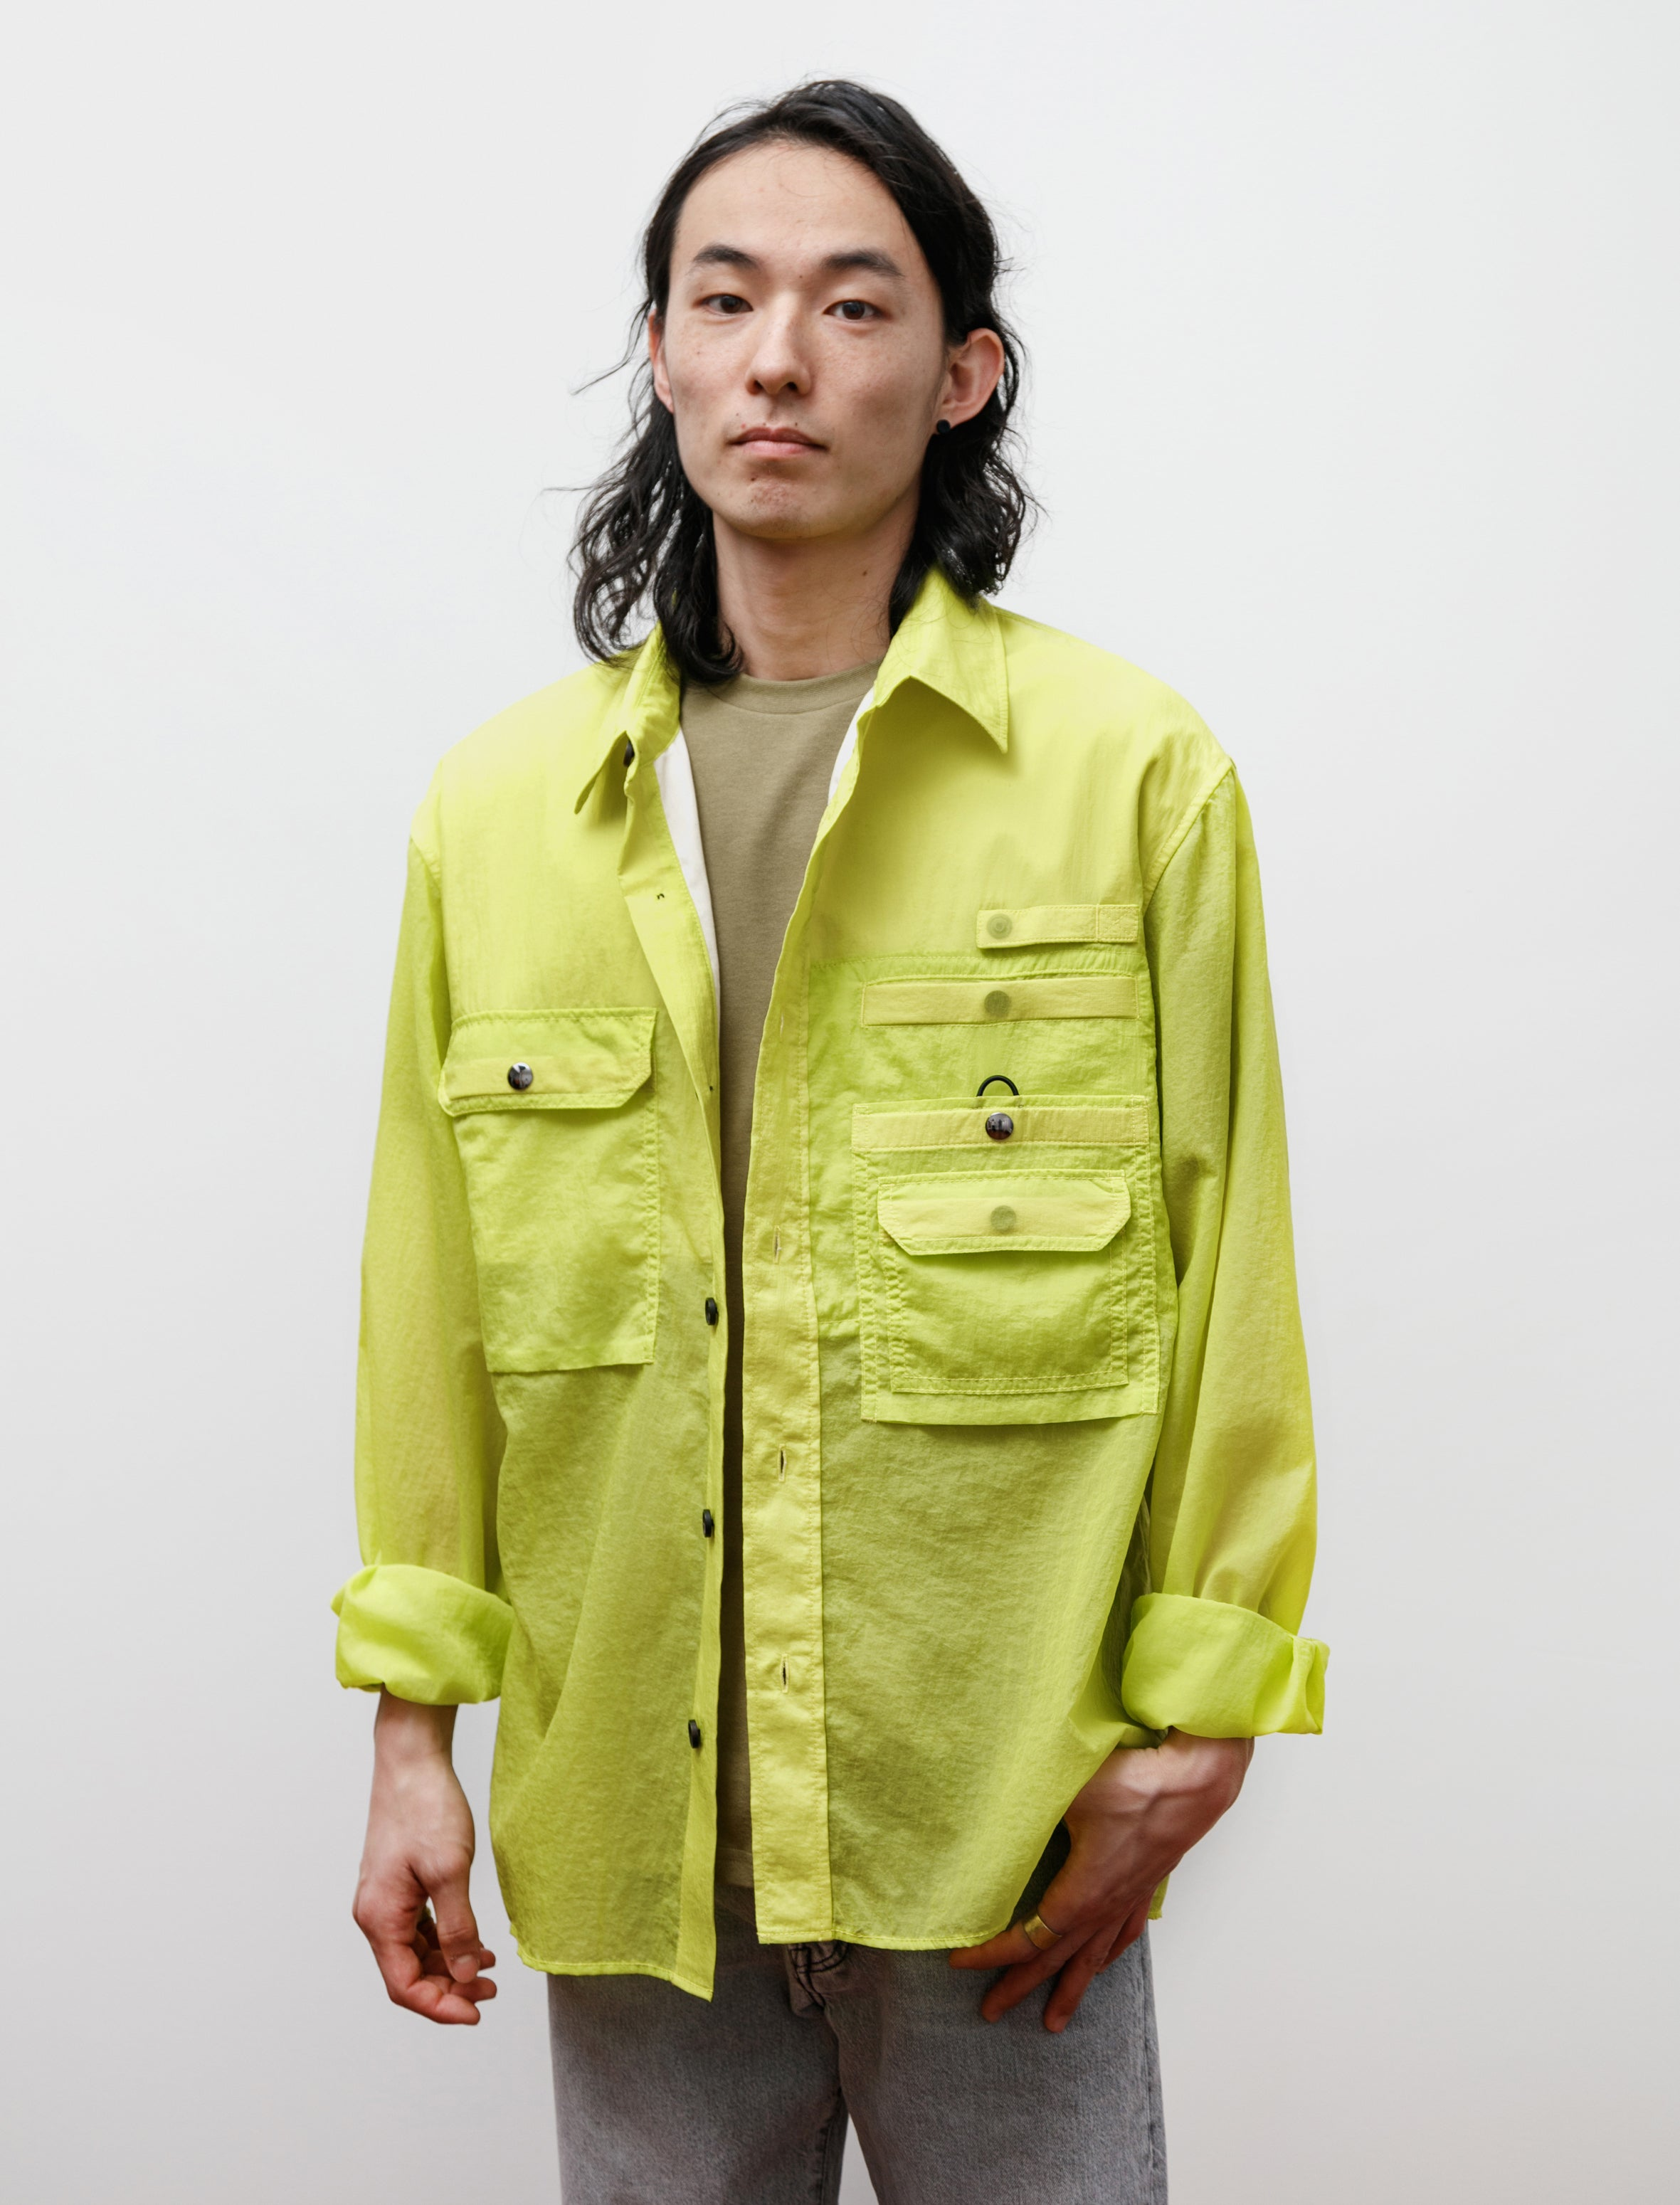 Acne Studios Orallo Cr Nylon Sharp Yellow